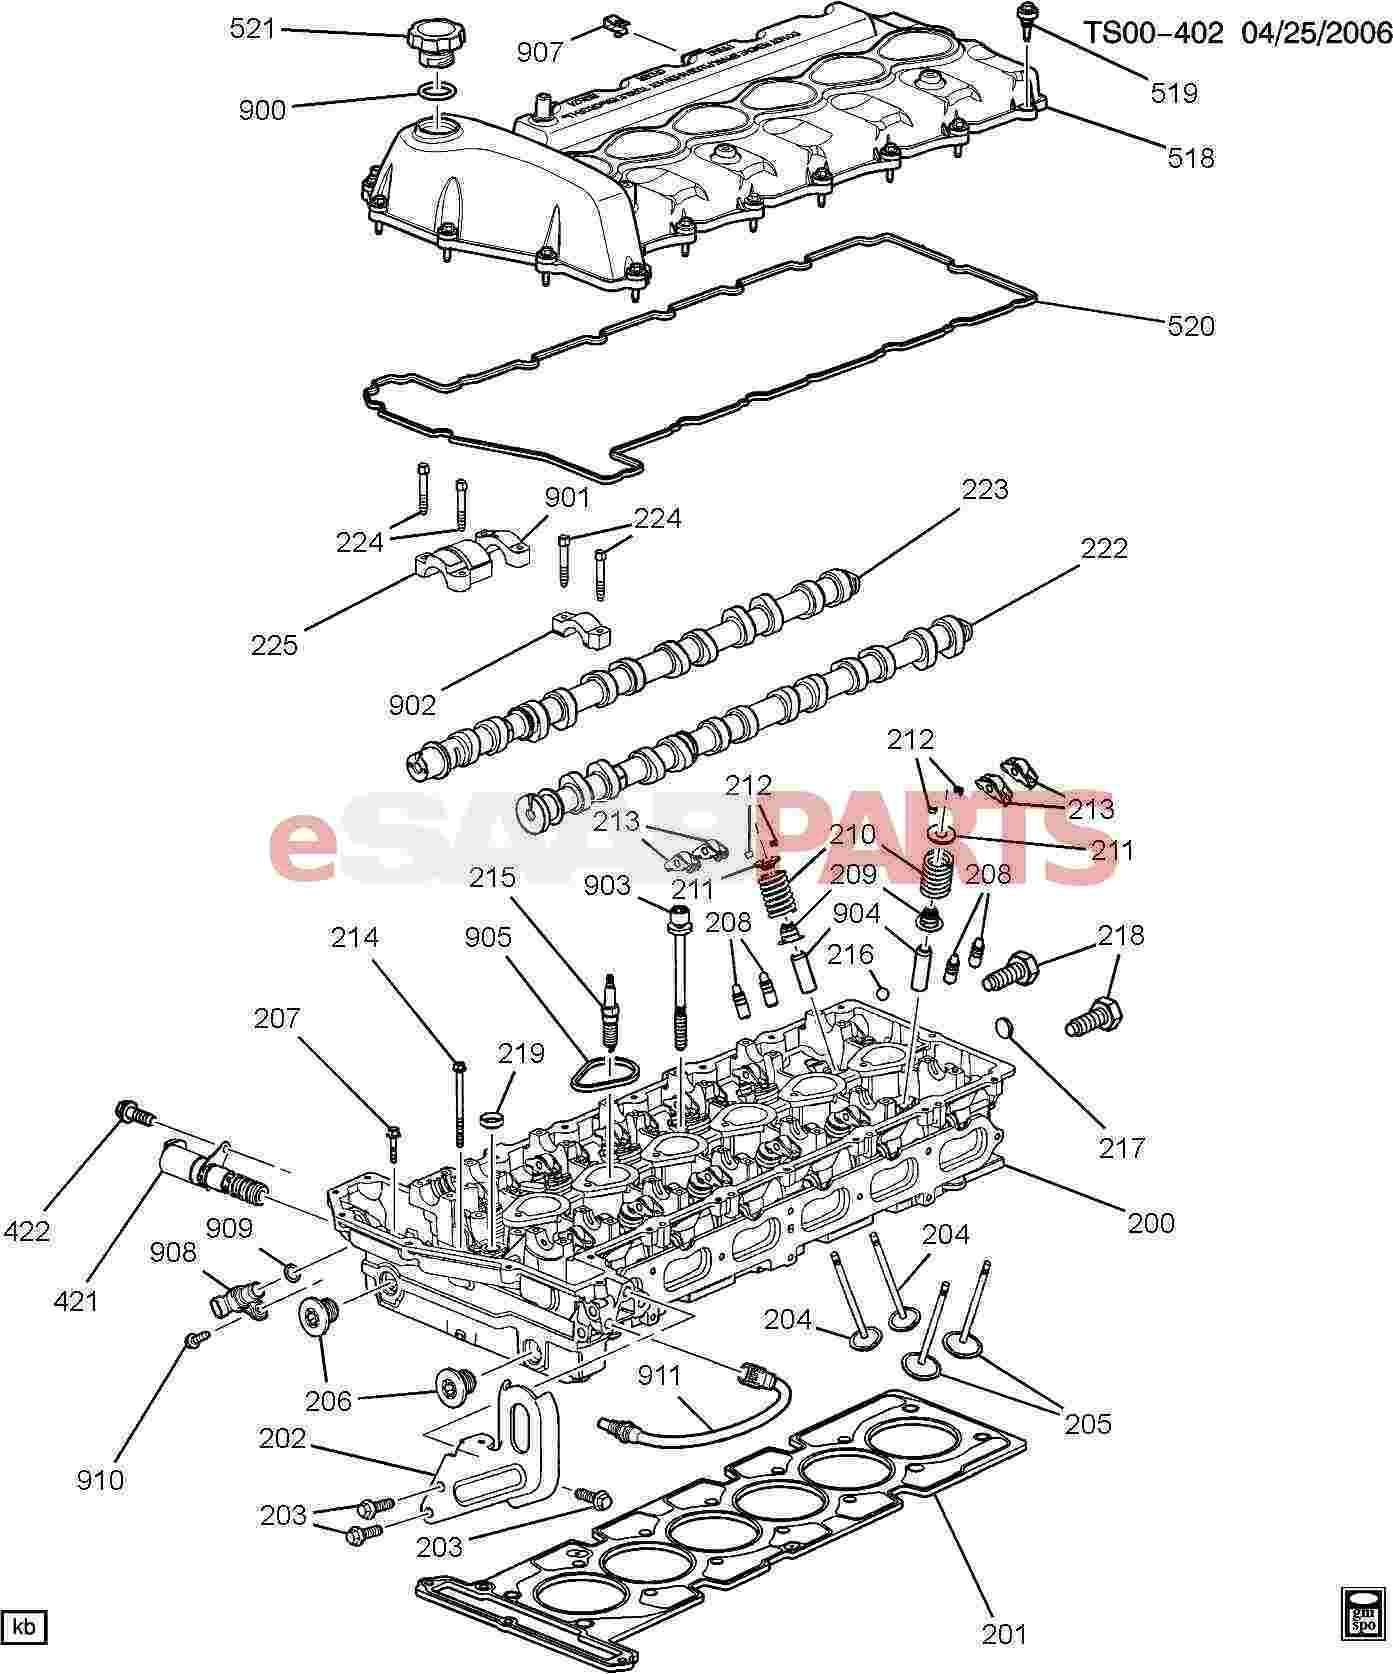 Diagram Of Coolant System 2002 Nissan Altima likewise Saab 2 0 Engine Diagram as well Saab 2 8 Engine Diagram as well Serpentine Belt Diagram 2001 Volvo S40 4 Cylinder 19 Liter Engine 07753 furthermore 84 Saab 900 Se Engine Diagram. on saab 9 3 serpentine belt diagram